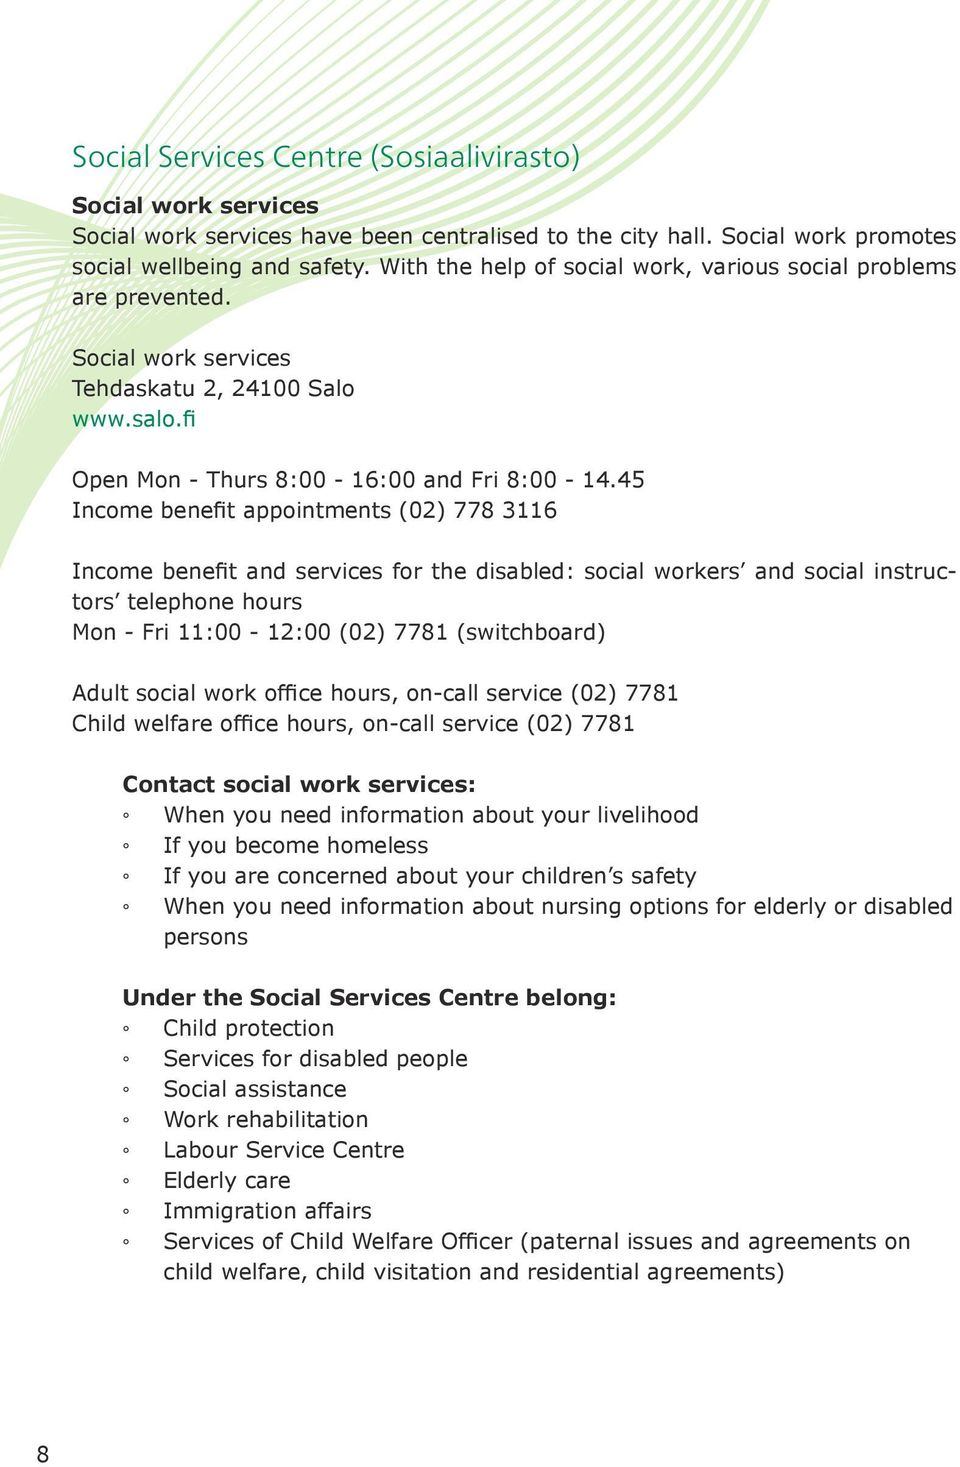 45 Income benefit appointments (02) 778 3116 Income benefit and services for the disabled: social workers and social instructors telephone hours Mon - Fri 11:00-12:00 (02) 7781 (switchboard) Adult